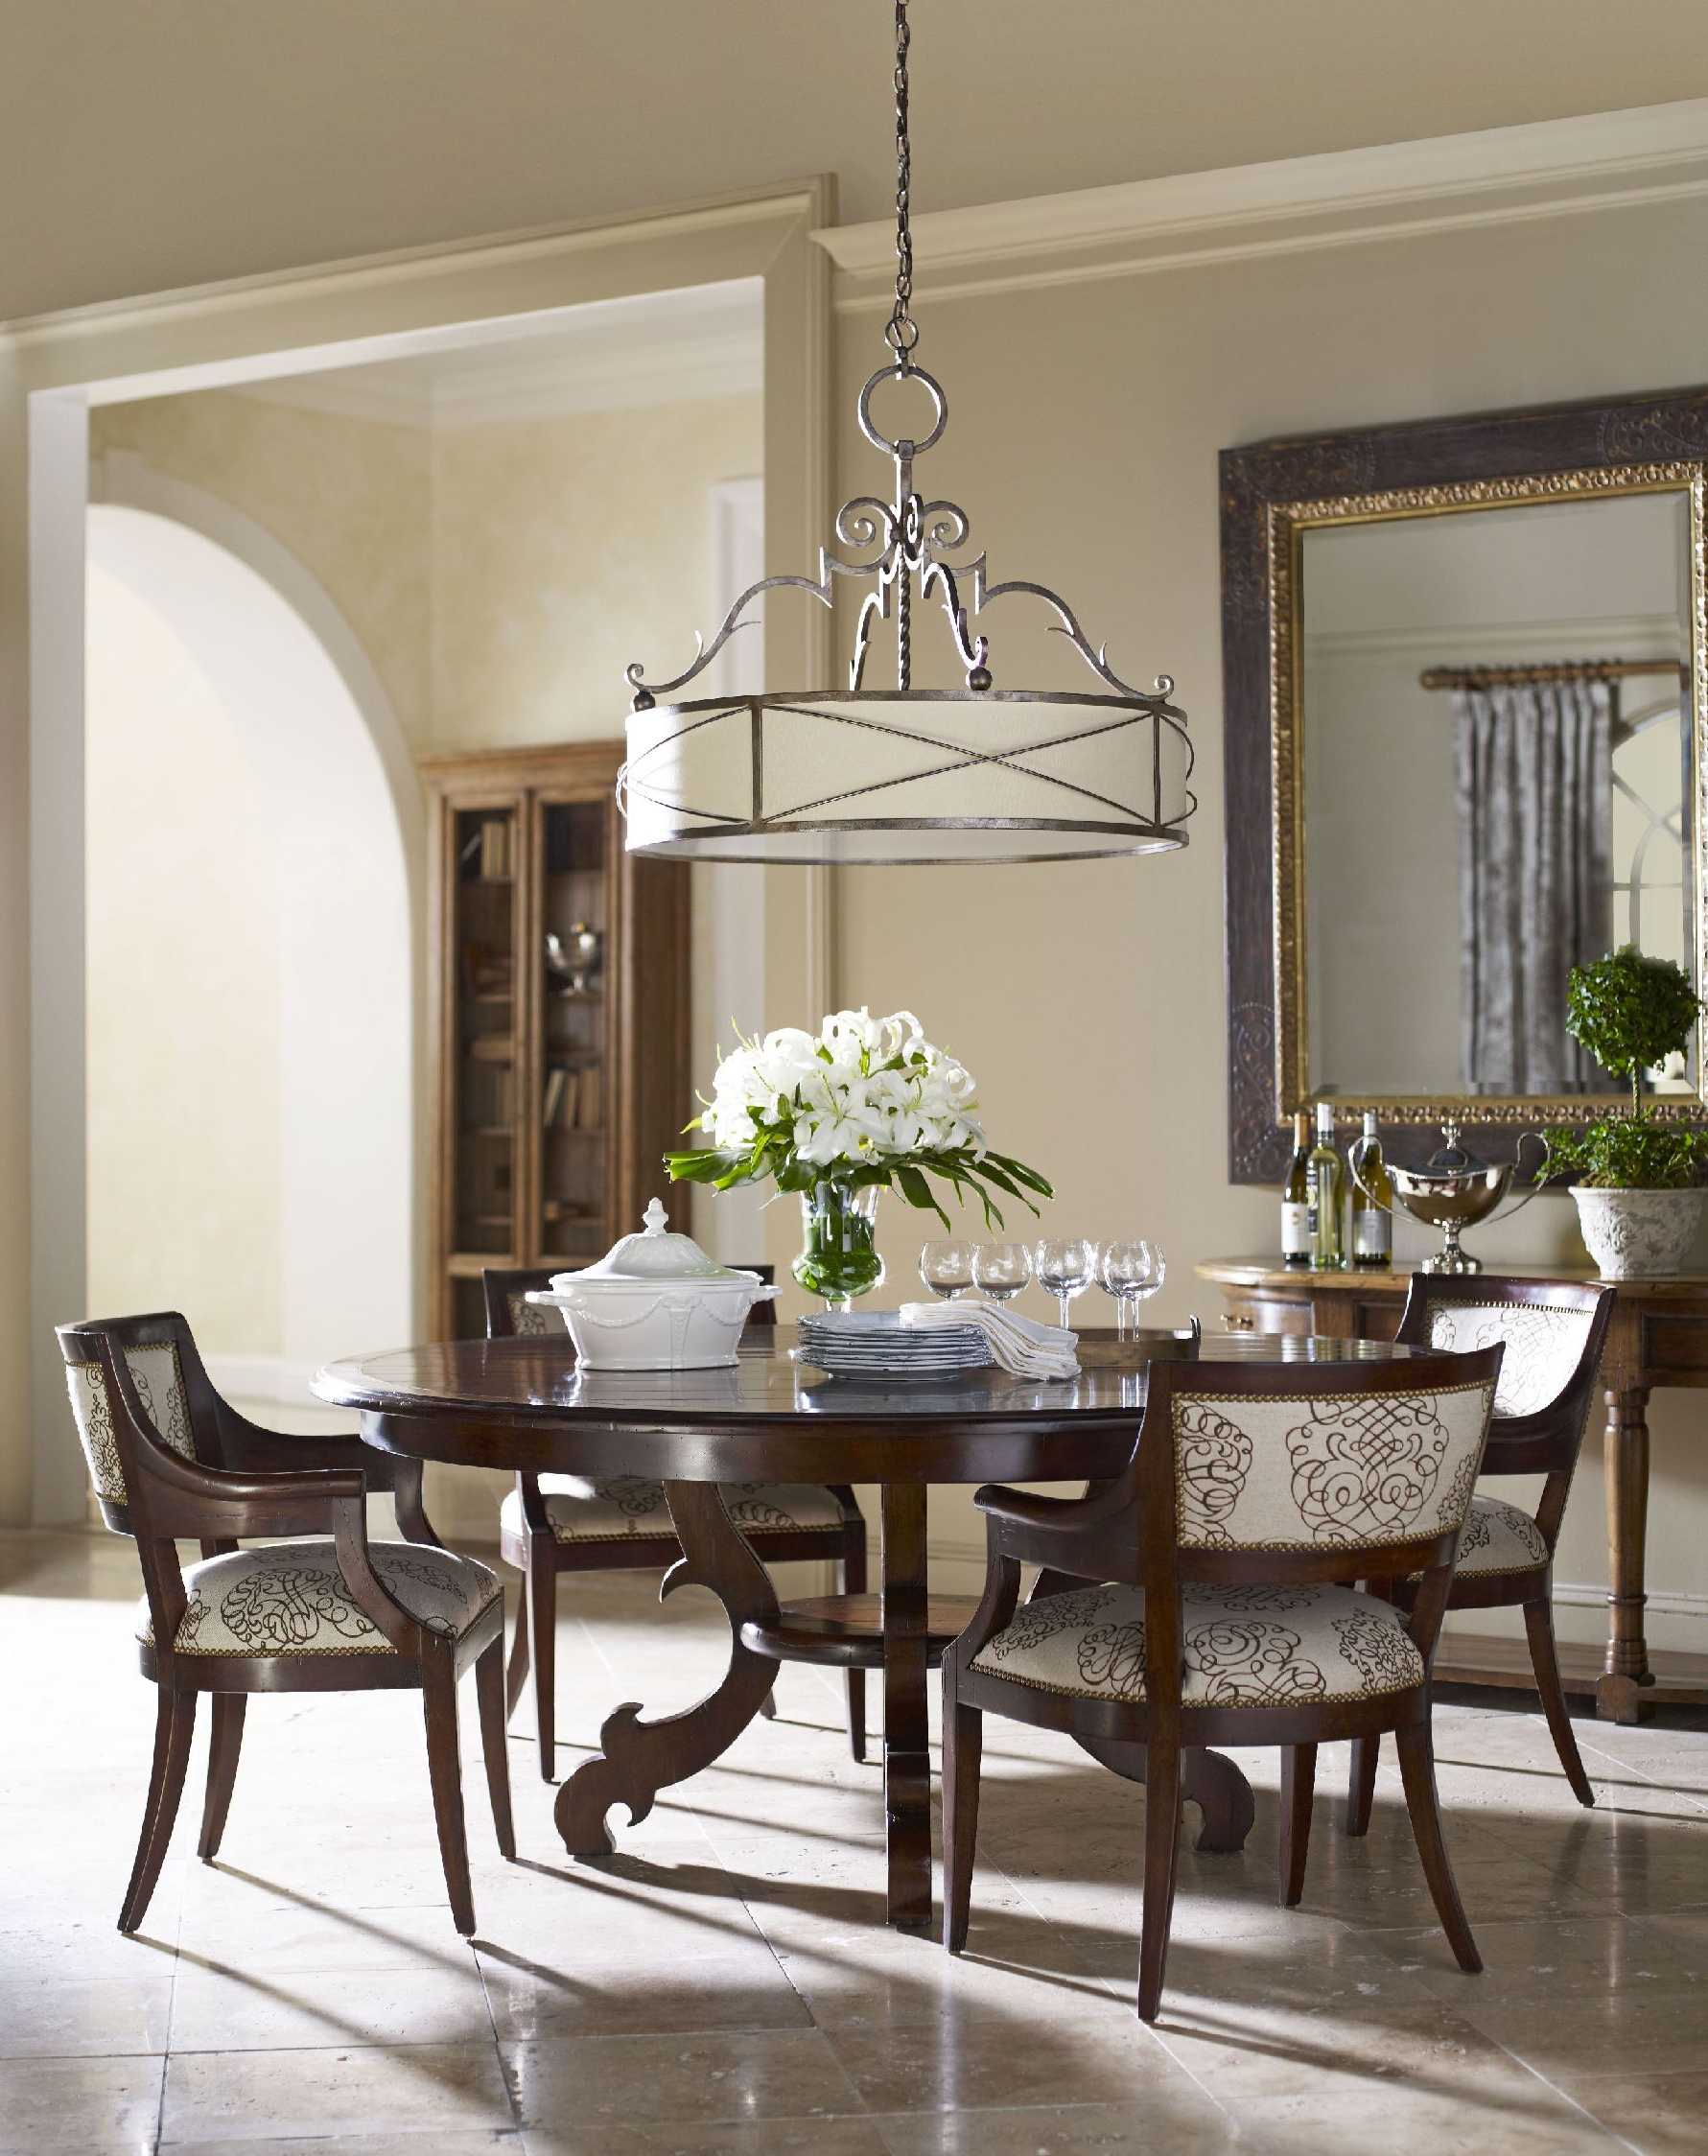 Dining Roompottery Barn Round Table Give An Elegant Touch In Pertaining To Most Popular Elegance Large Round Dining Tables (View 17 of 25)